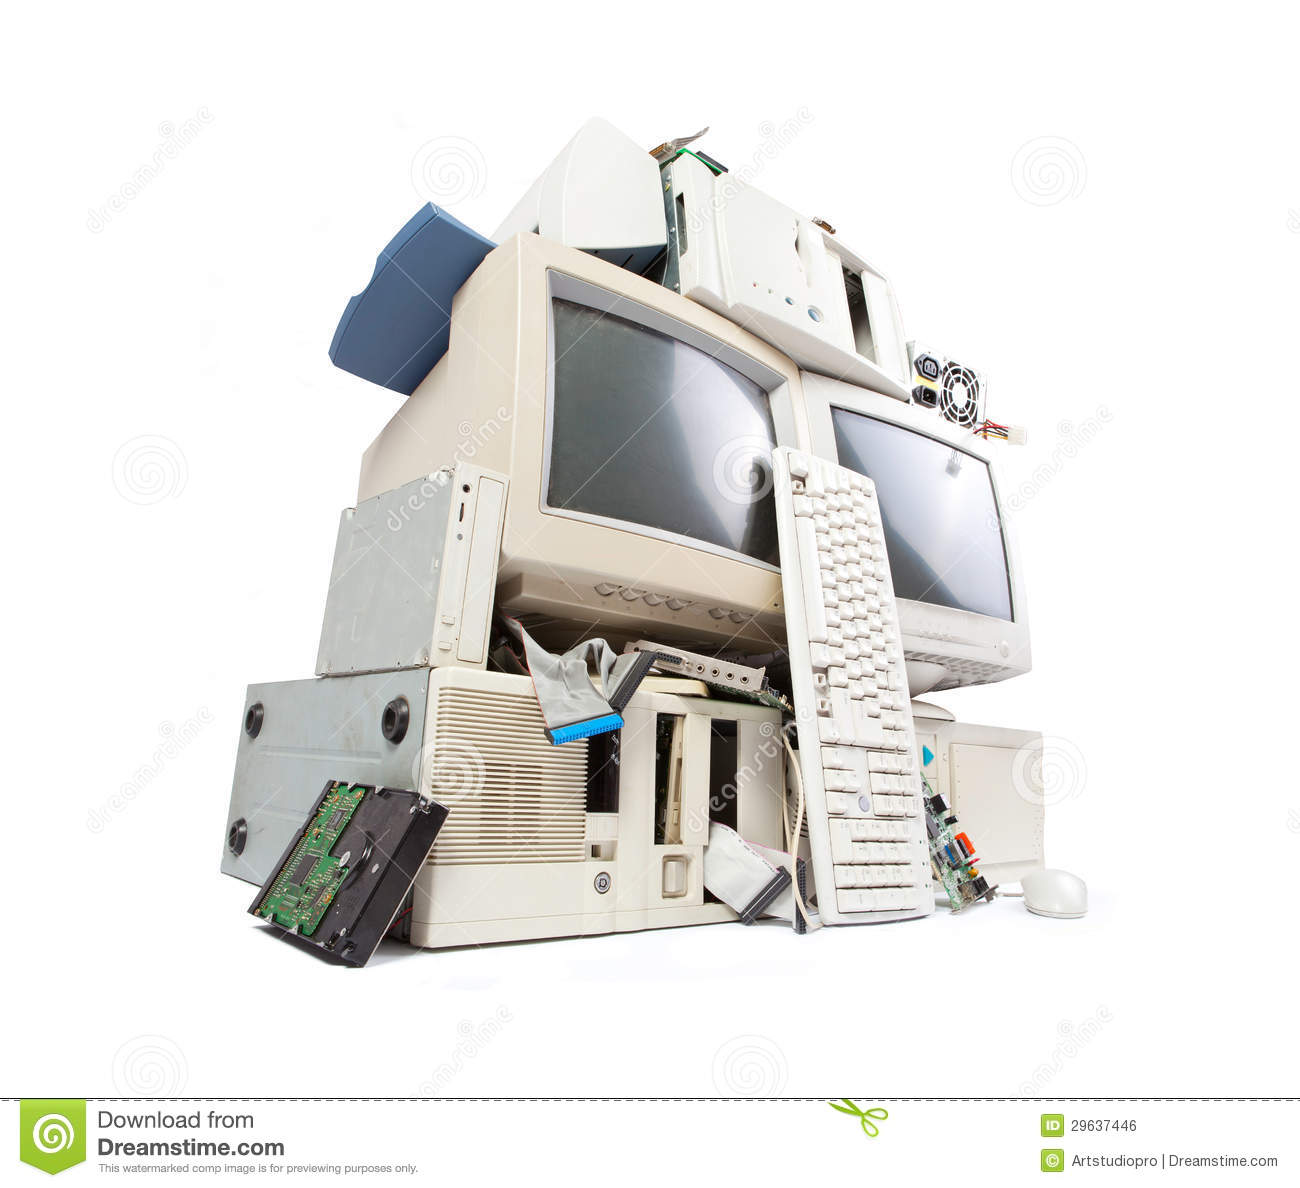 What We Learned likewise puter Electronic Waste together with Blood Drip Vectors Free Download Icon additionally White Spider Web furthermore Whole Body Kids With Hands Up Cartoon Clipart Black And White. on parts of the house clipart